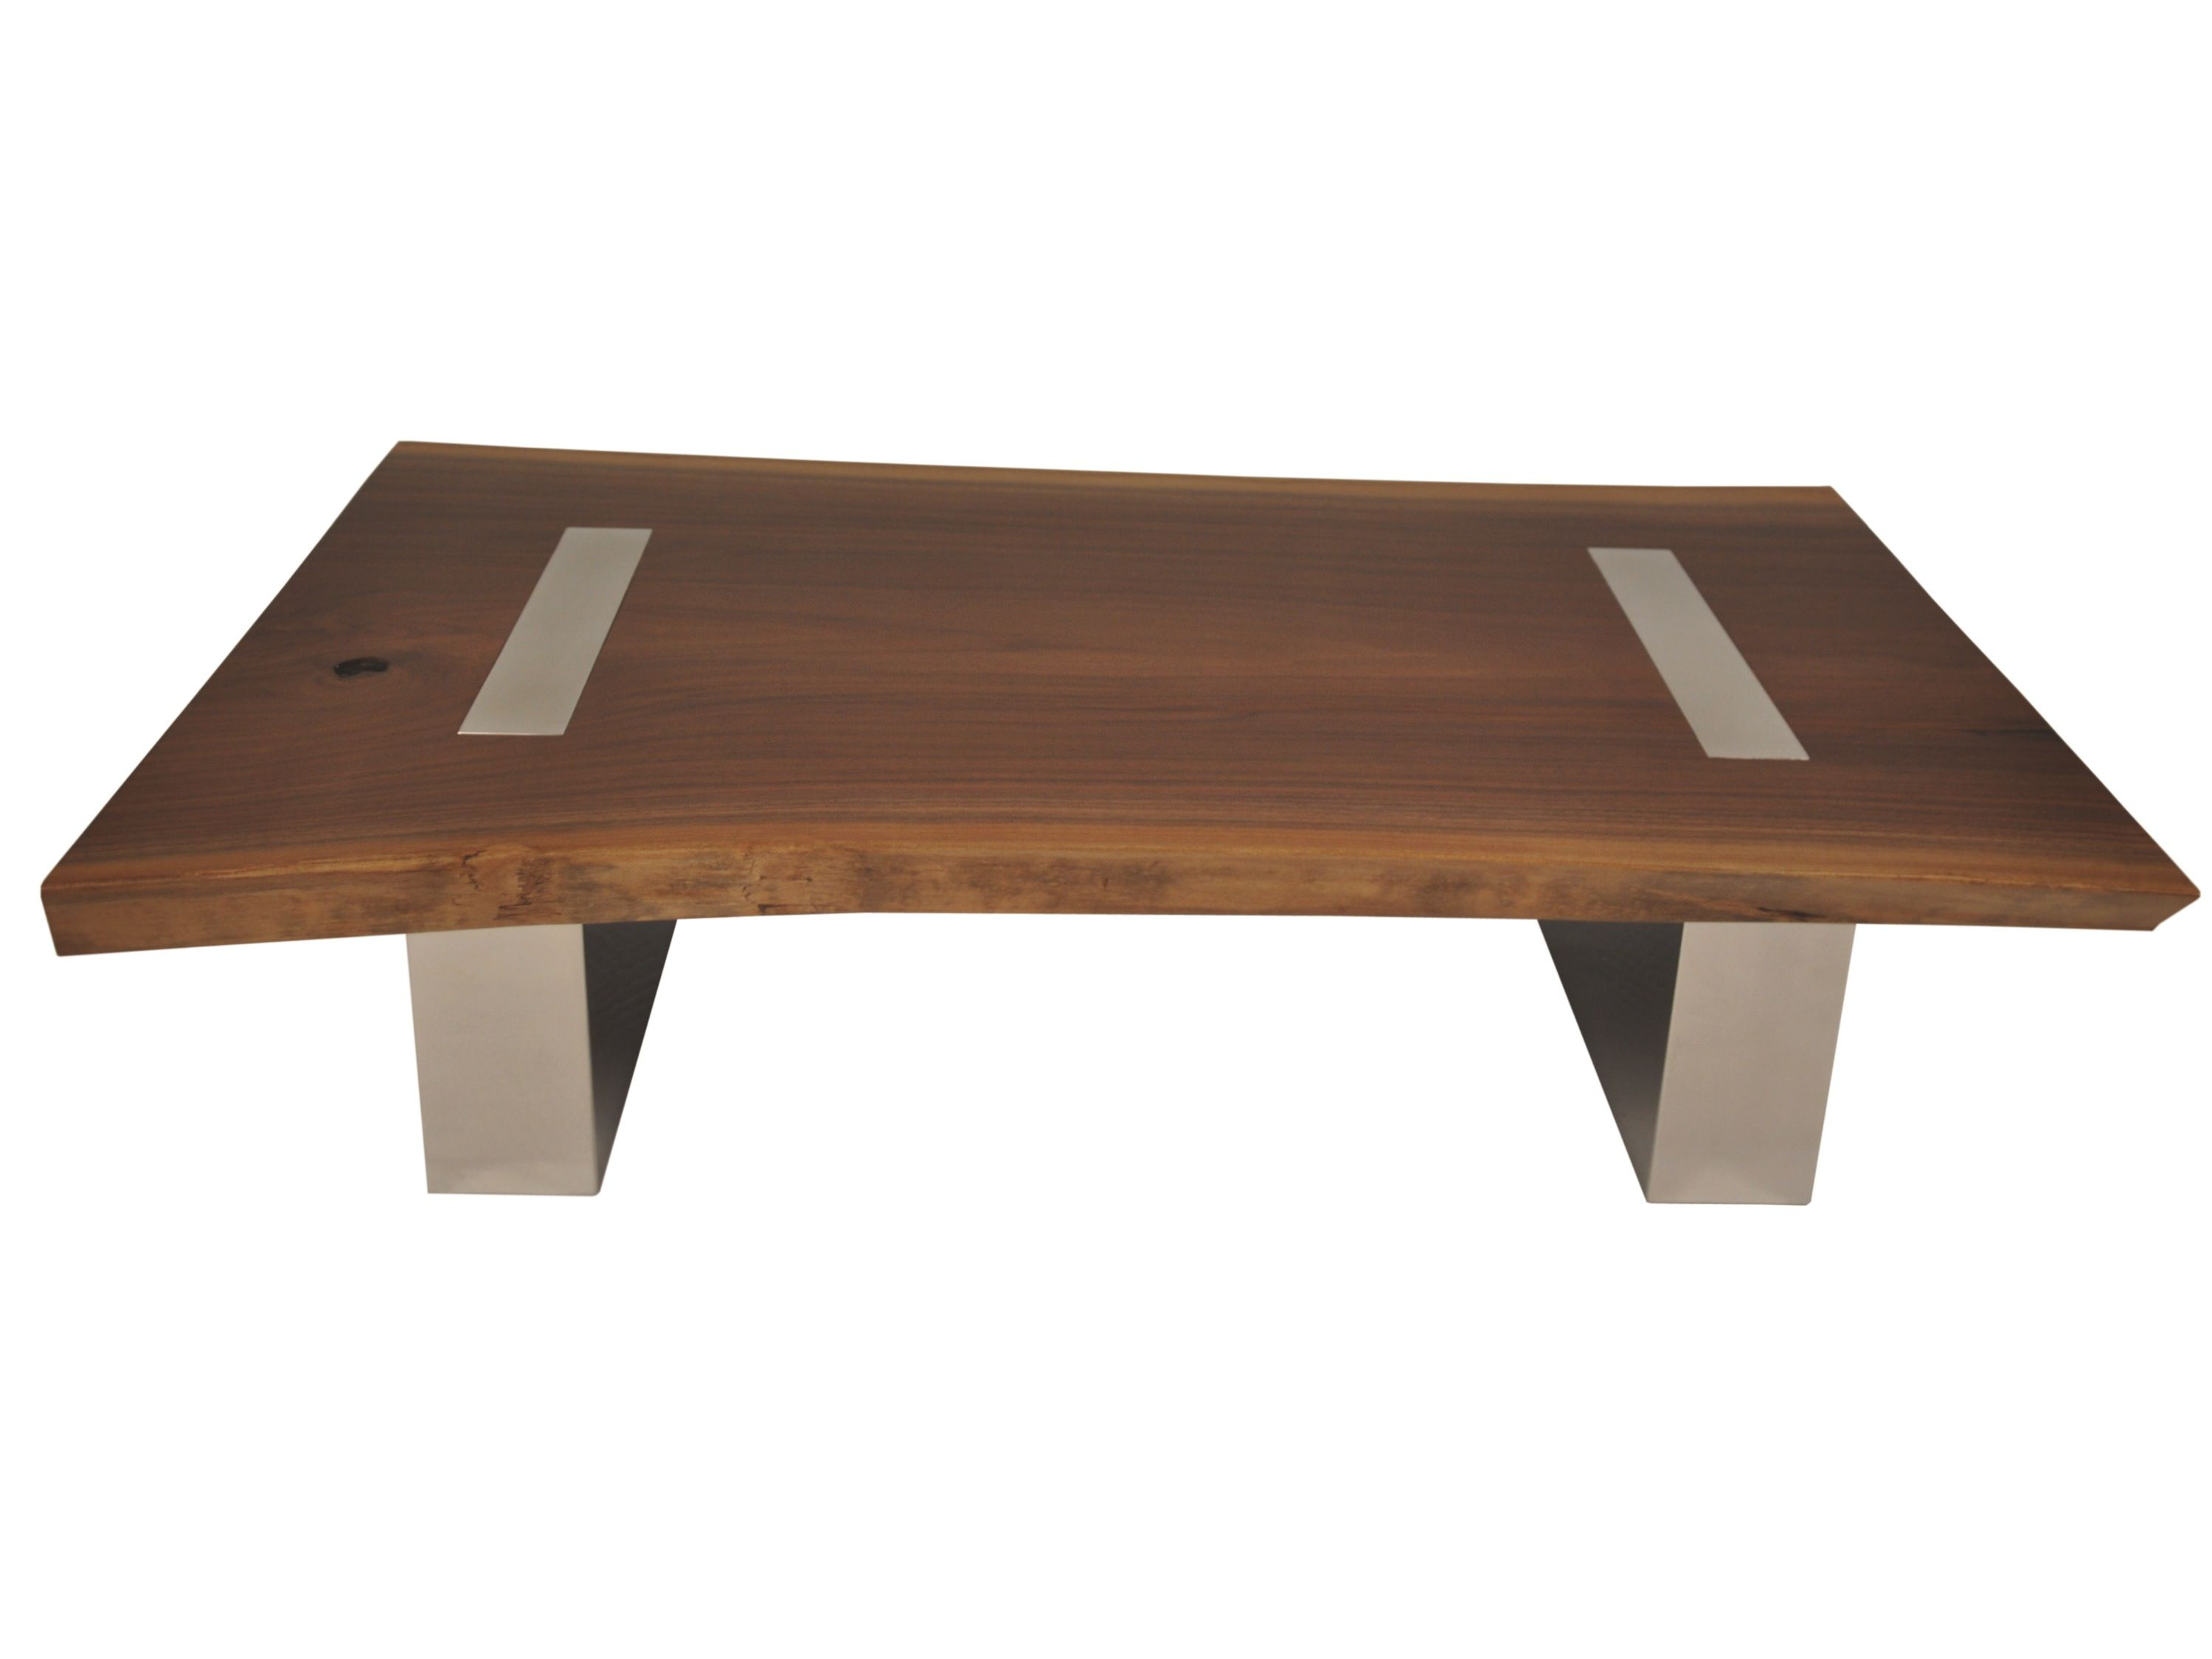 Solid walnut accent table  Top in reclaimed wood and base in polished stainless  steel or. Solid walnut accent table  Top in reclaimed wood and base in